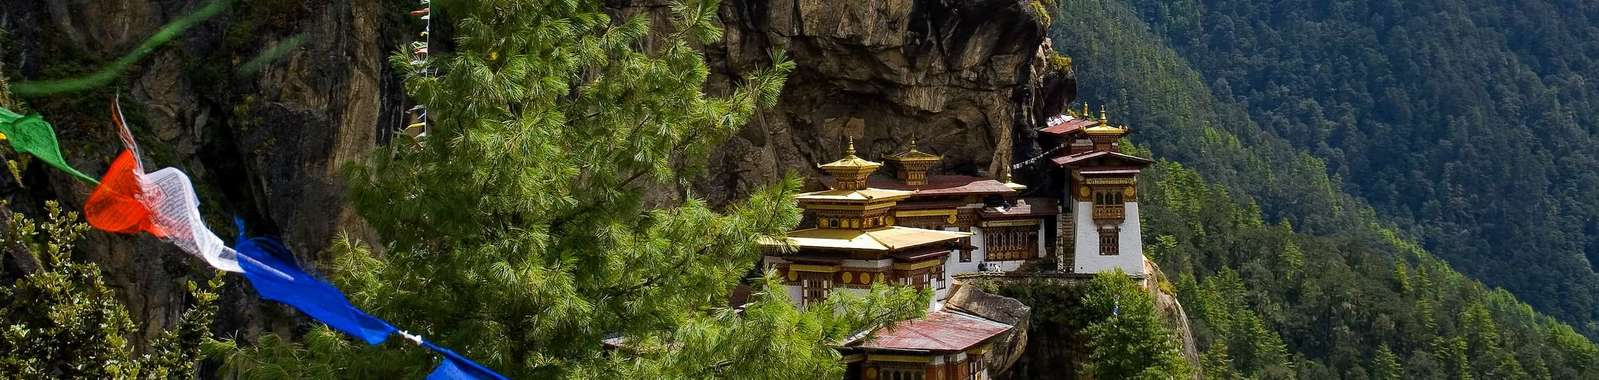 Hike up to Tiger's Nest monastery on a tailor-made holiday to Bhutan